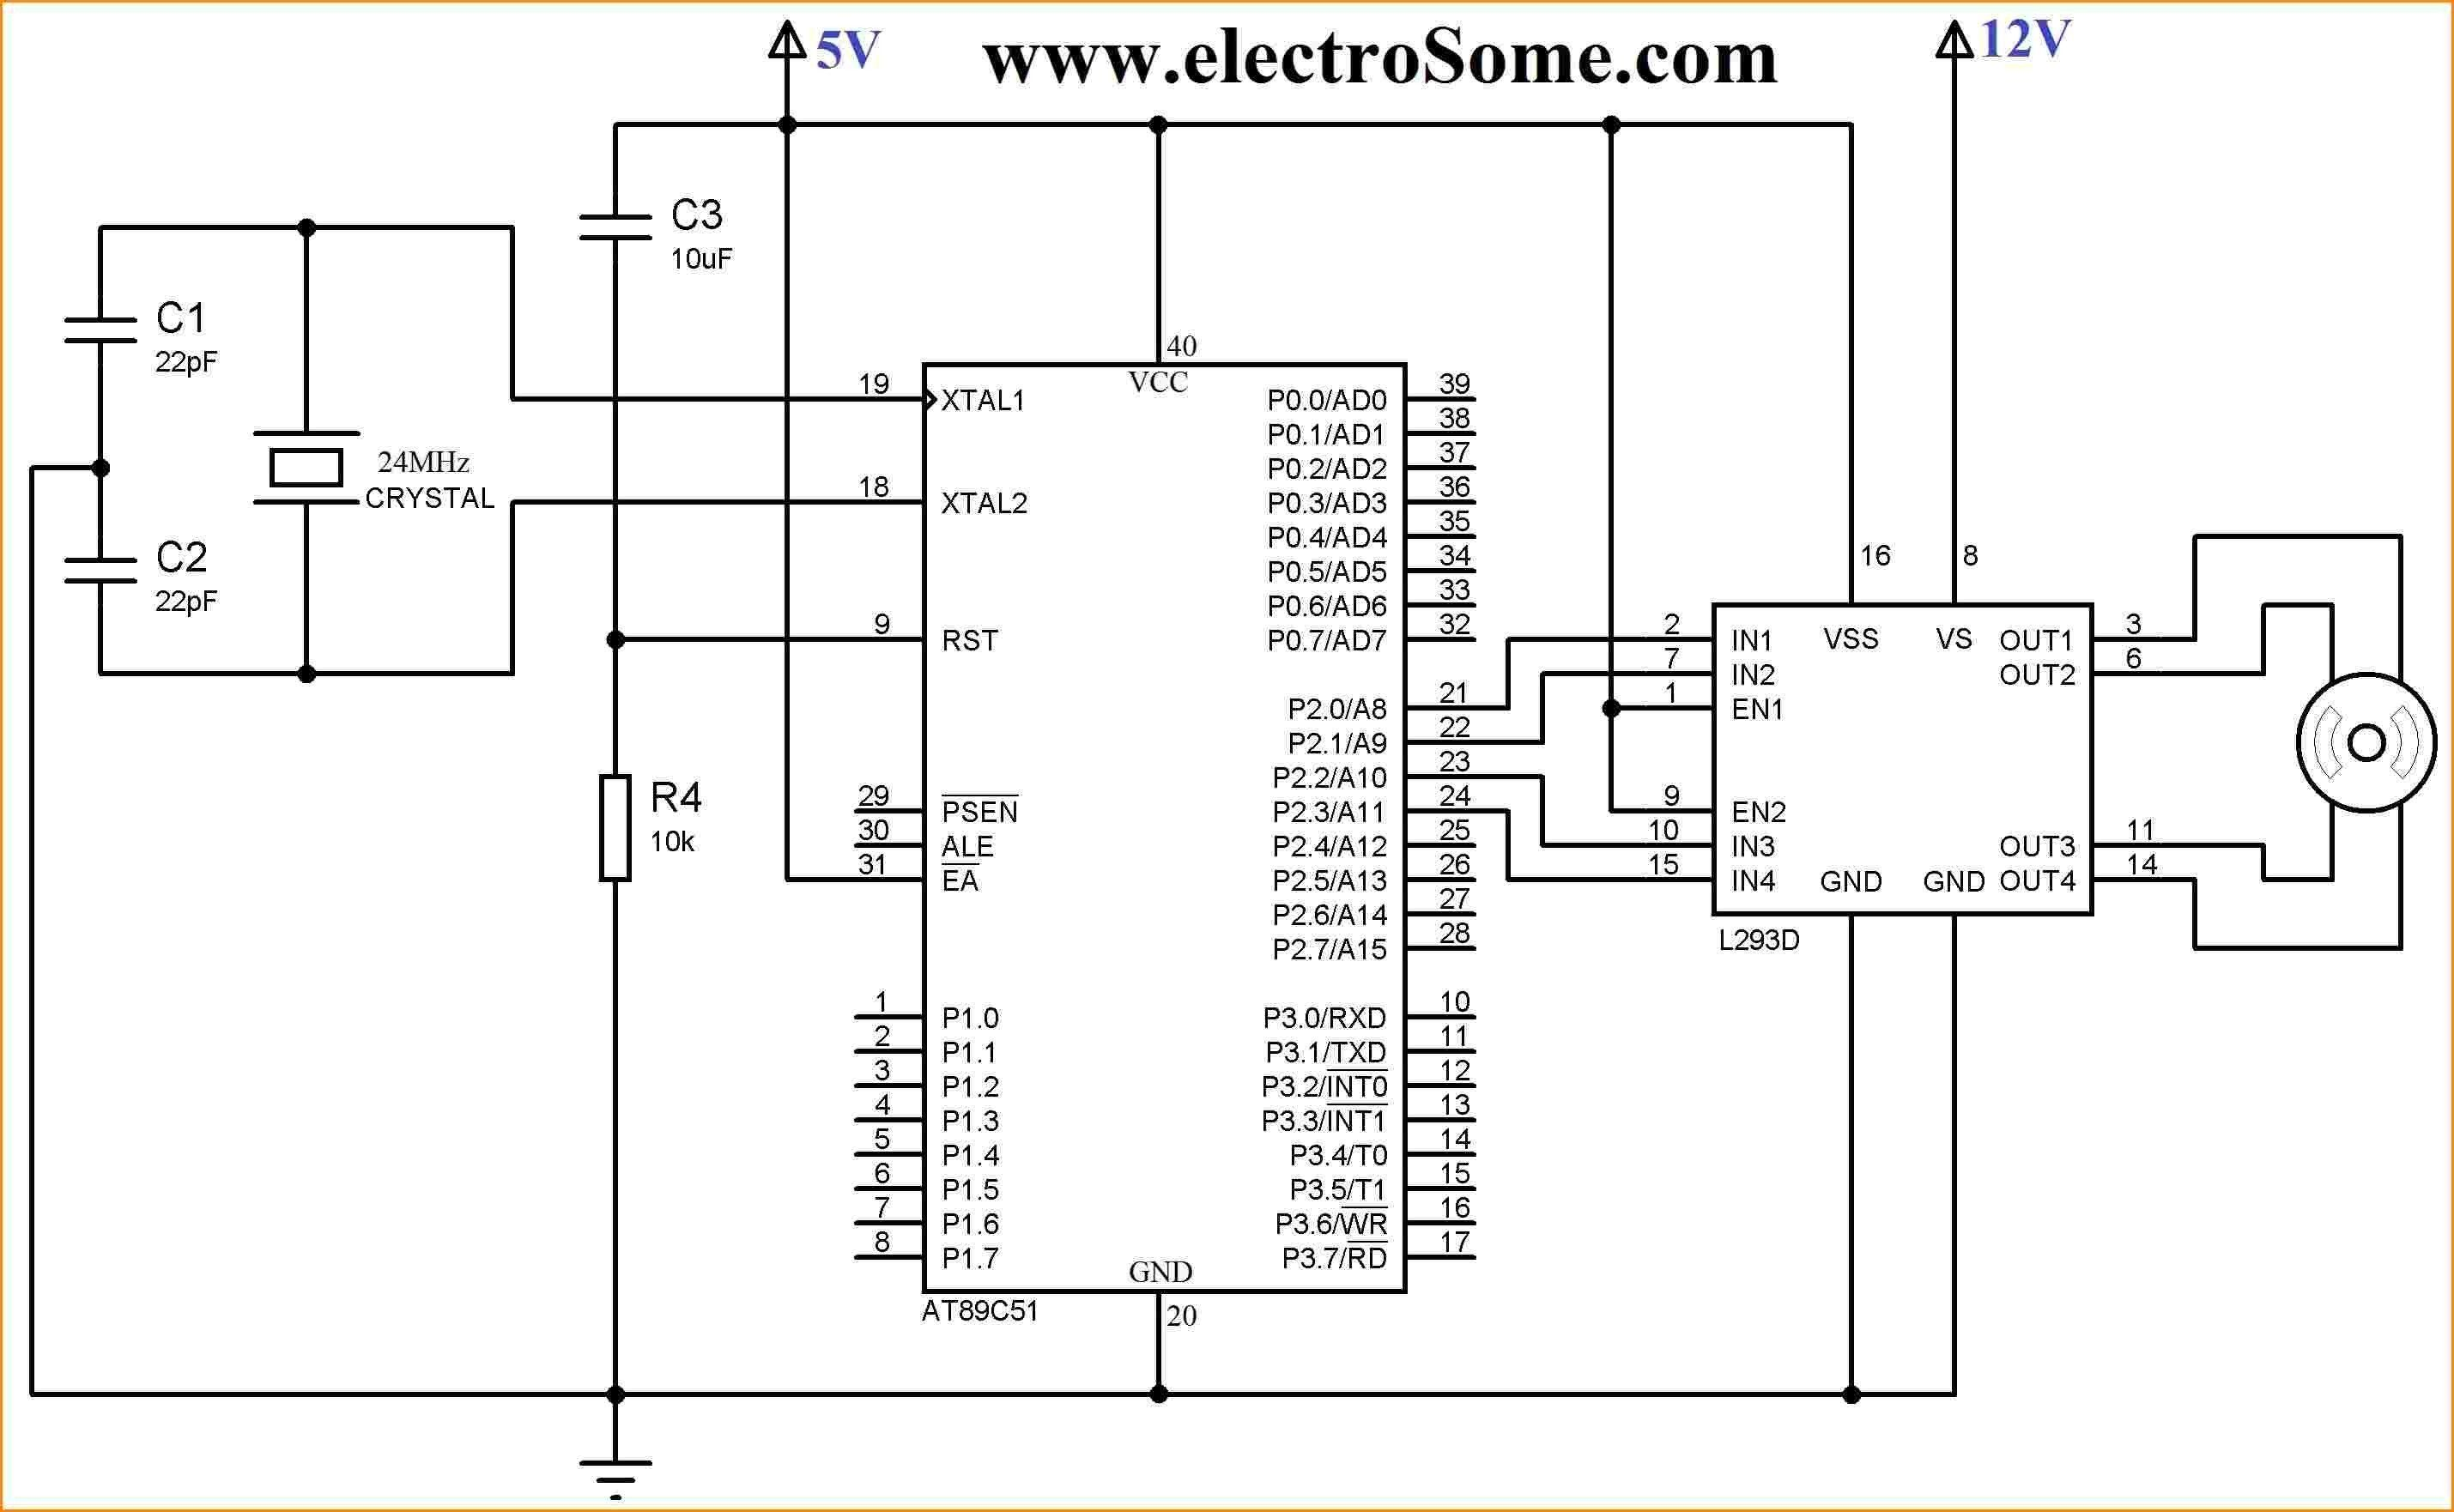 swann security camera n3960 wiring diagram collection electrical for intended for swann n3960 wiring diagram [ 2859 x 1762 Pixel ]